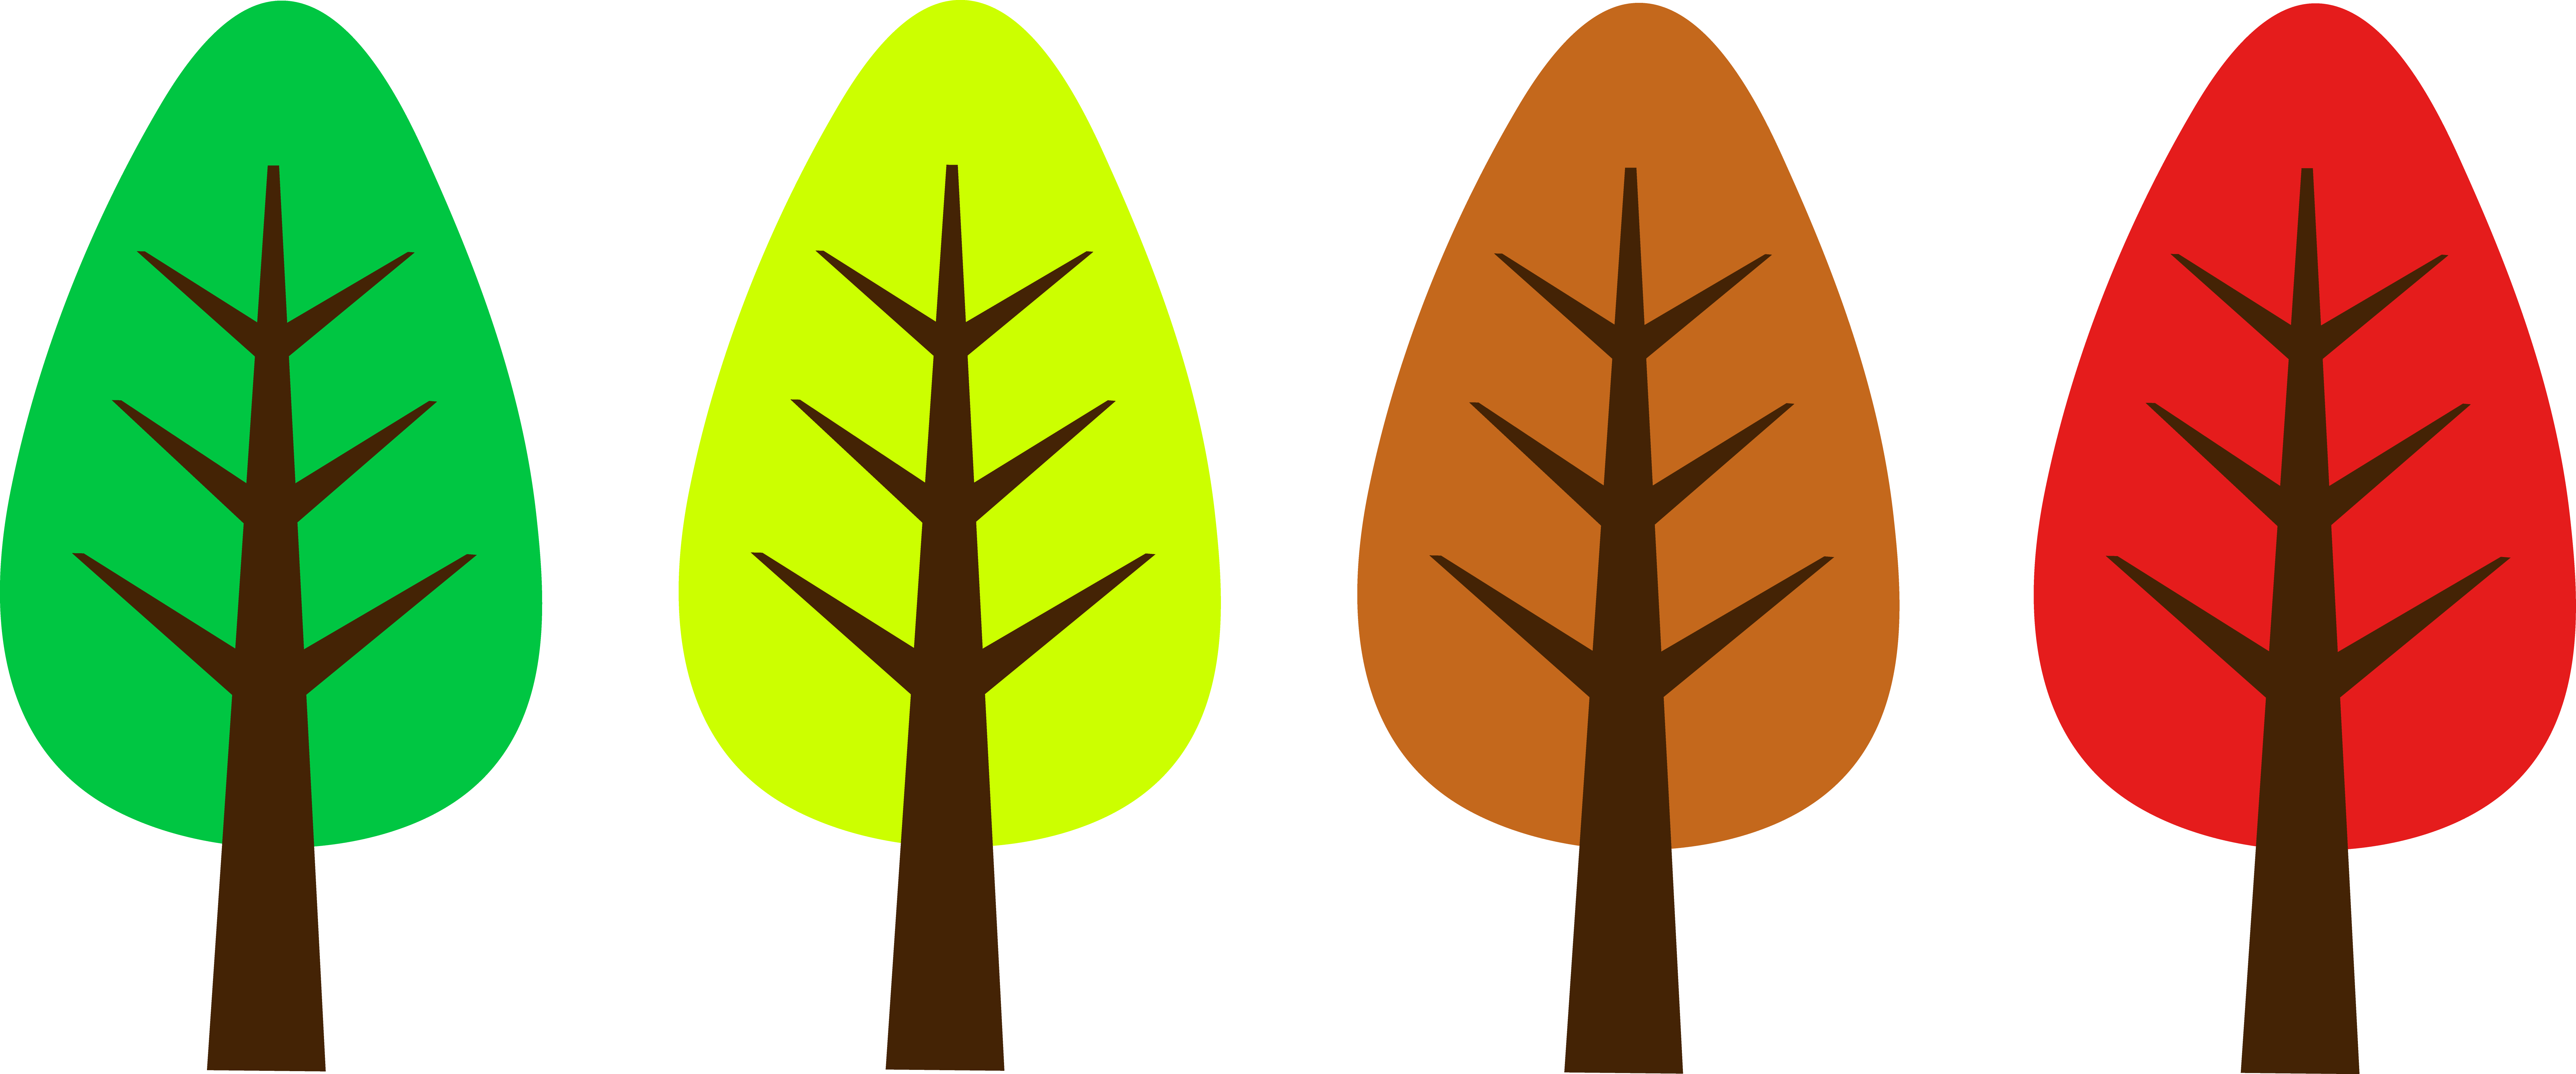 Clipart Simple Free Art Free